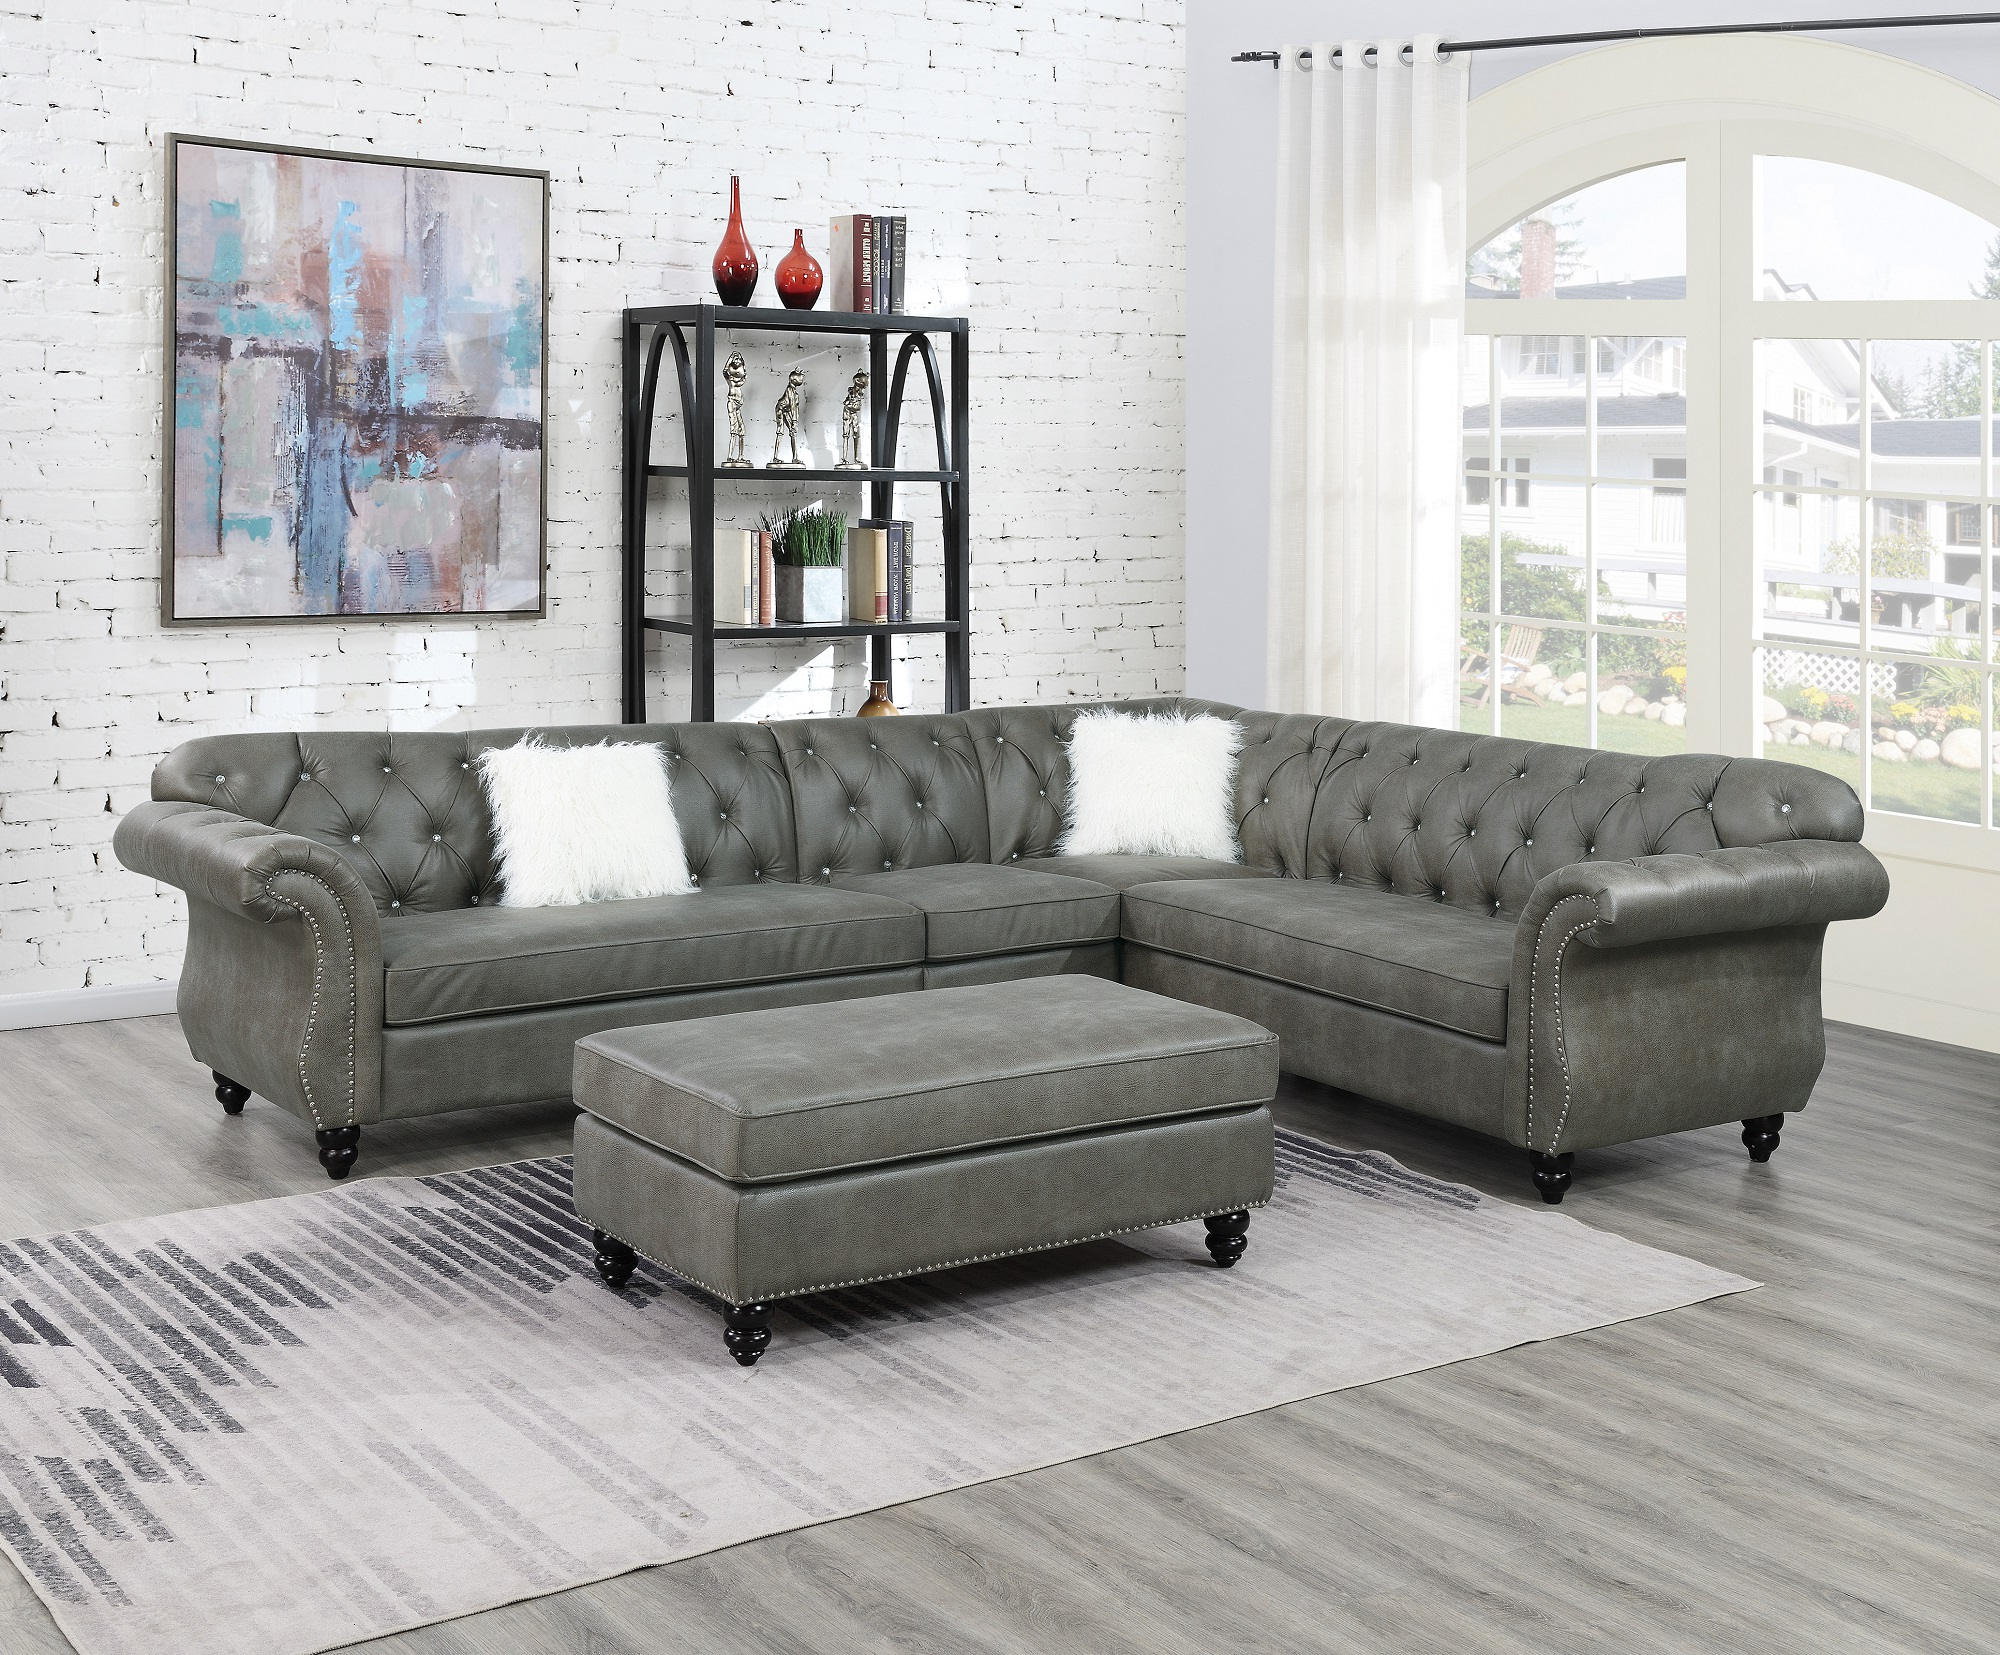 Most Recent 4Pc Beckett Contemporary Sectional Sofas And Ottoman Sets Regarding Contemporary Modern Living Room Sectional Sofa Set Slate (View 2 of 25)